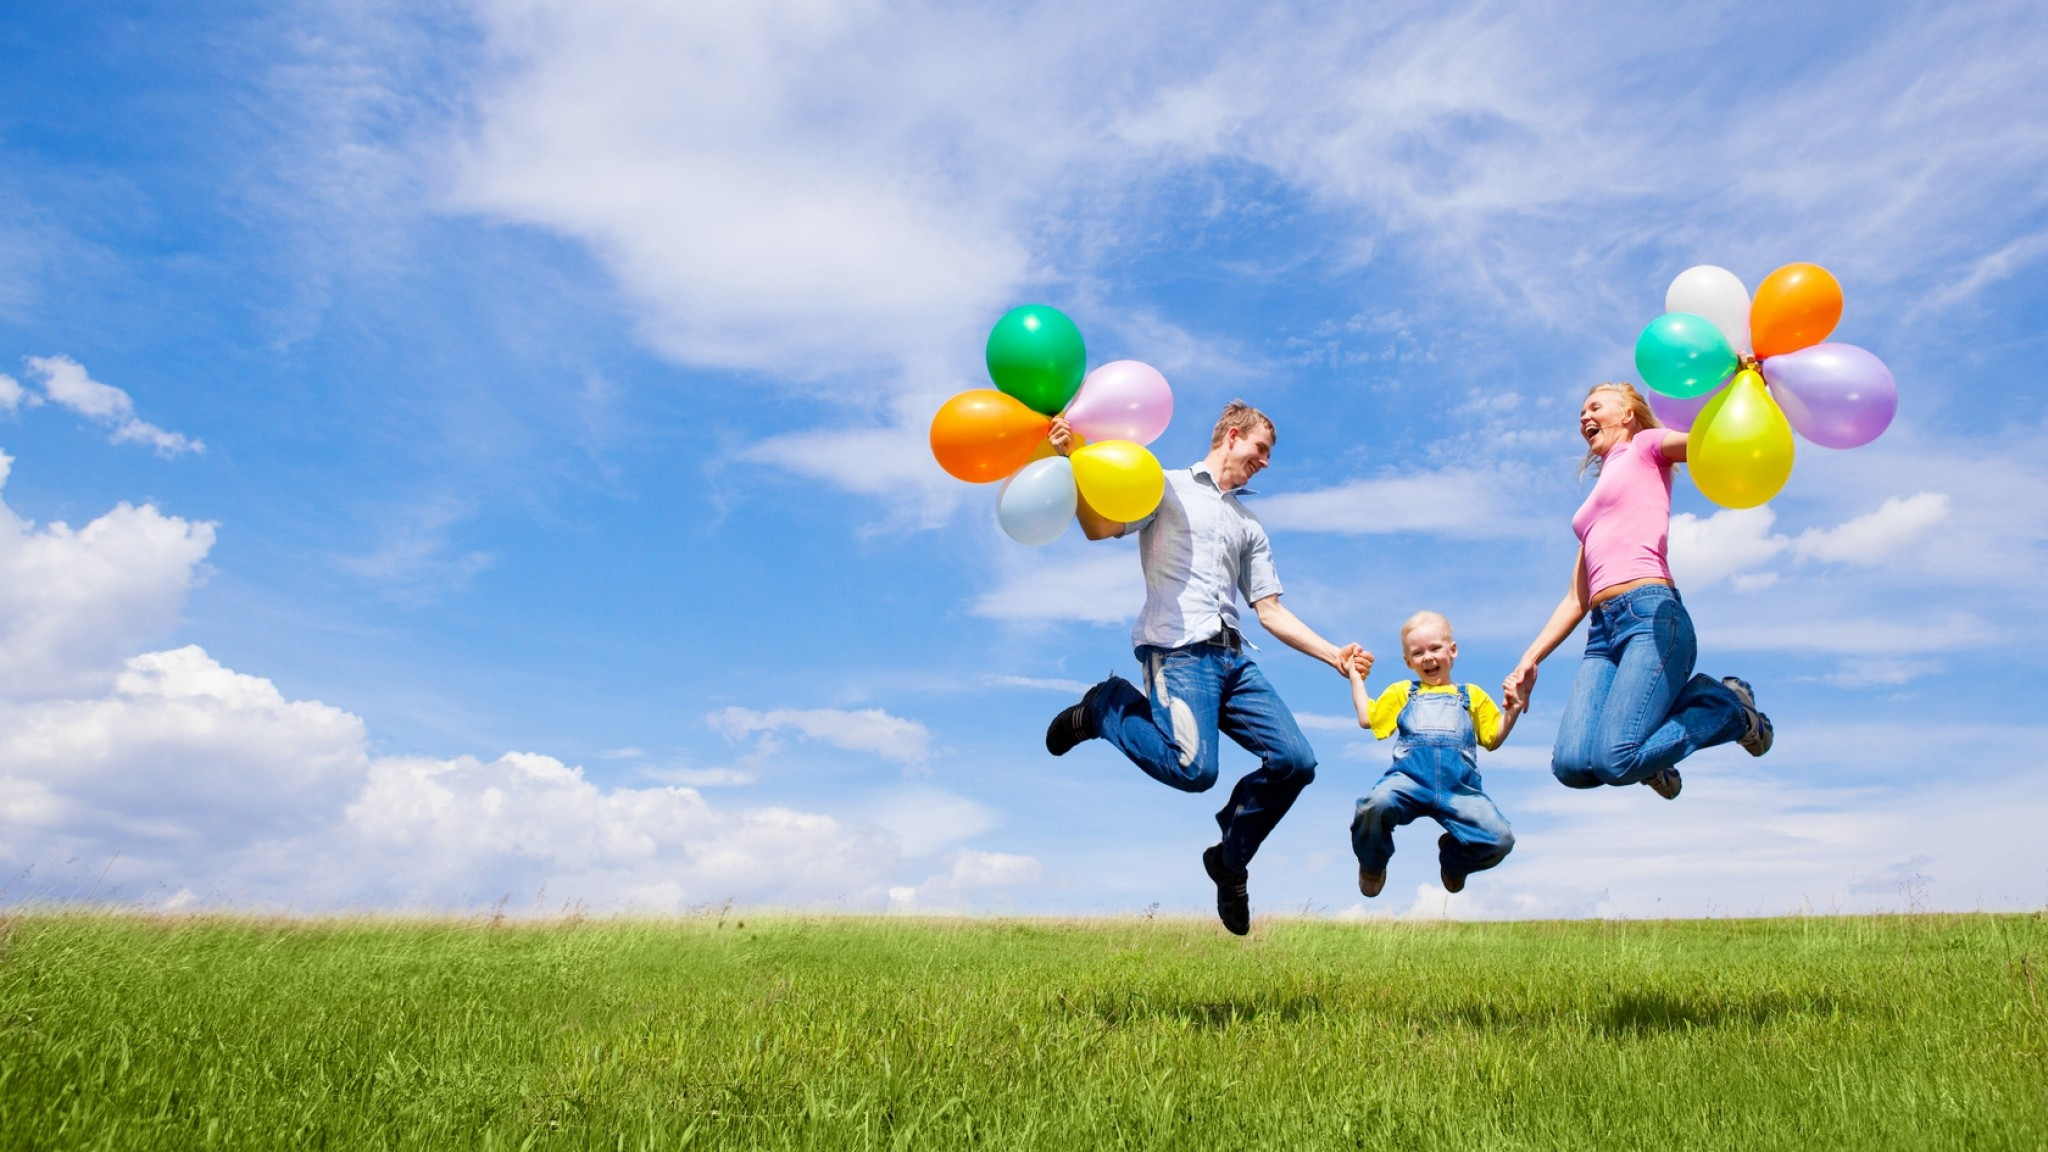 2048x1152  Wallpaper family, children, balloons, nature, holiday, joy